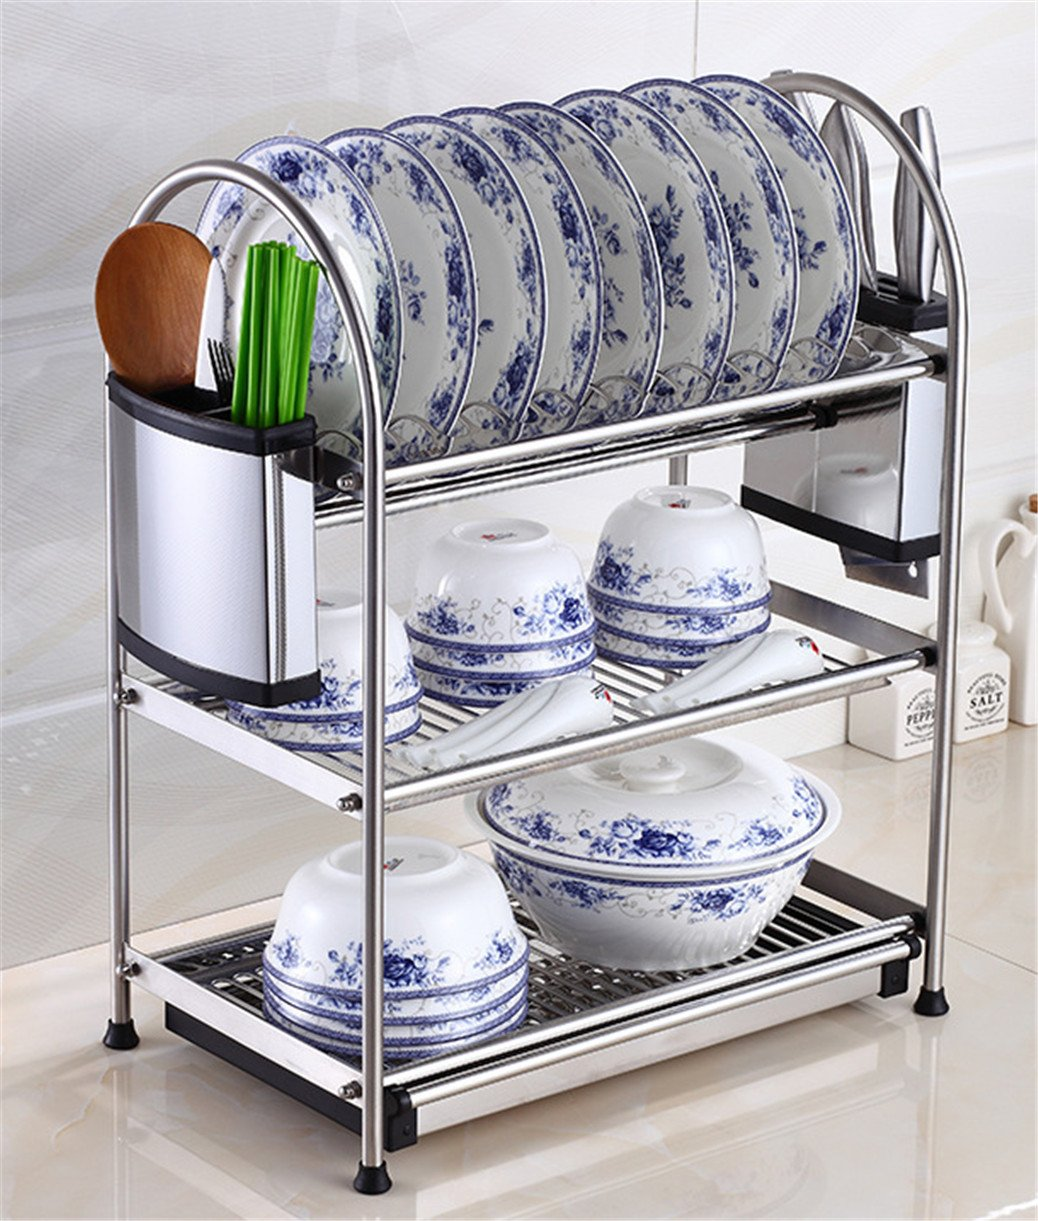 Stainless Steel Dish Drying Rack,Kpblis Stylish and Elegant Design,Advanced Dish Racks for Any Kitchen Style(3-Tier Dish Rack) by Kpblis